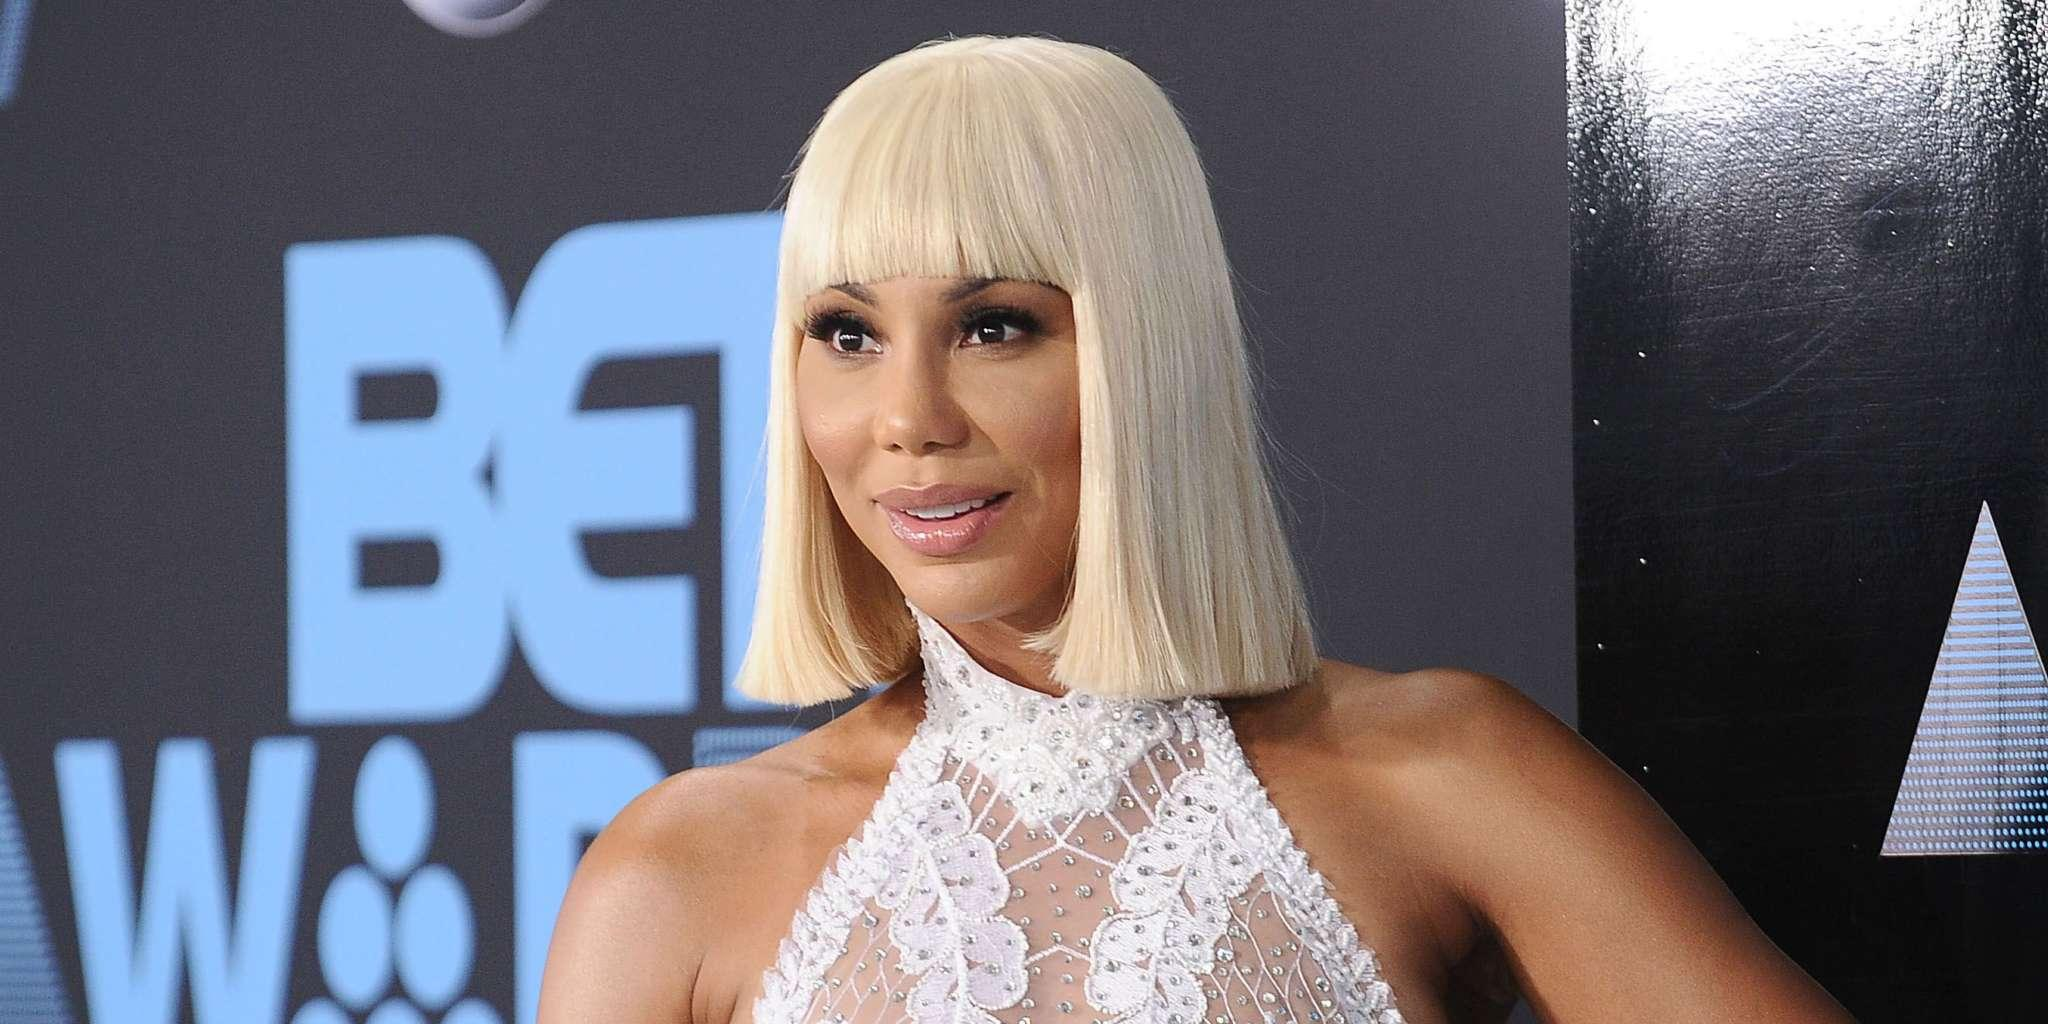 Tamar Braxton Shares One Of The Proudest Moments Of Her Life - It Involves A Sisterhood 'Worth More Than Gold'